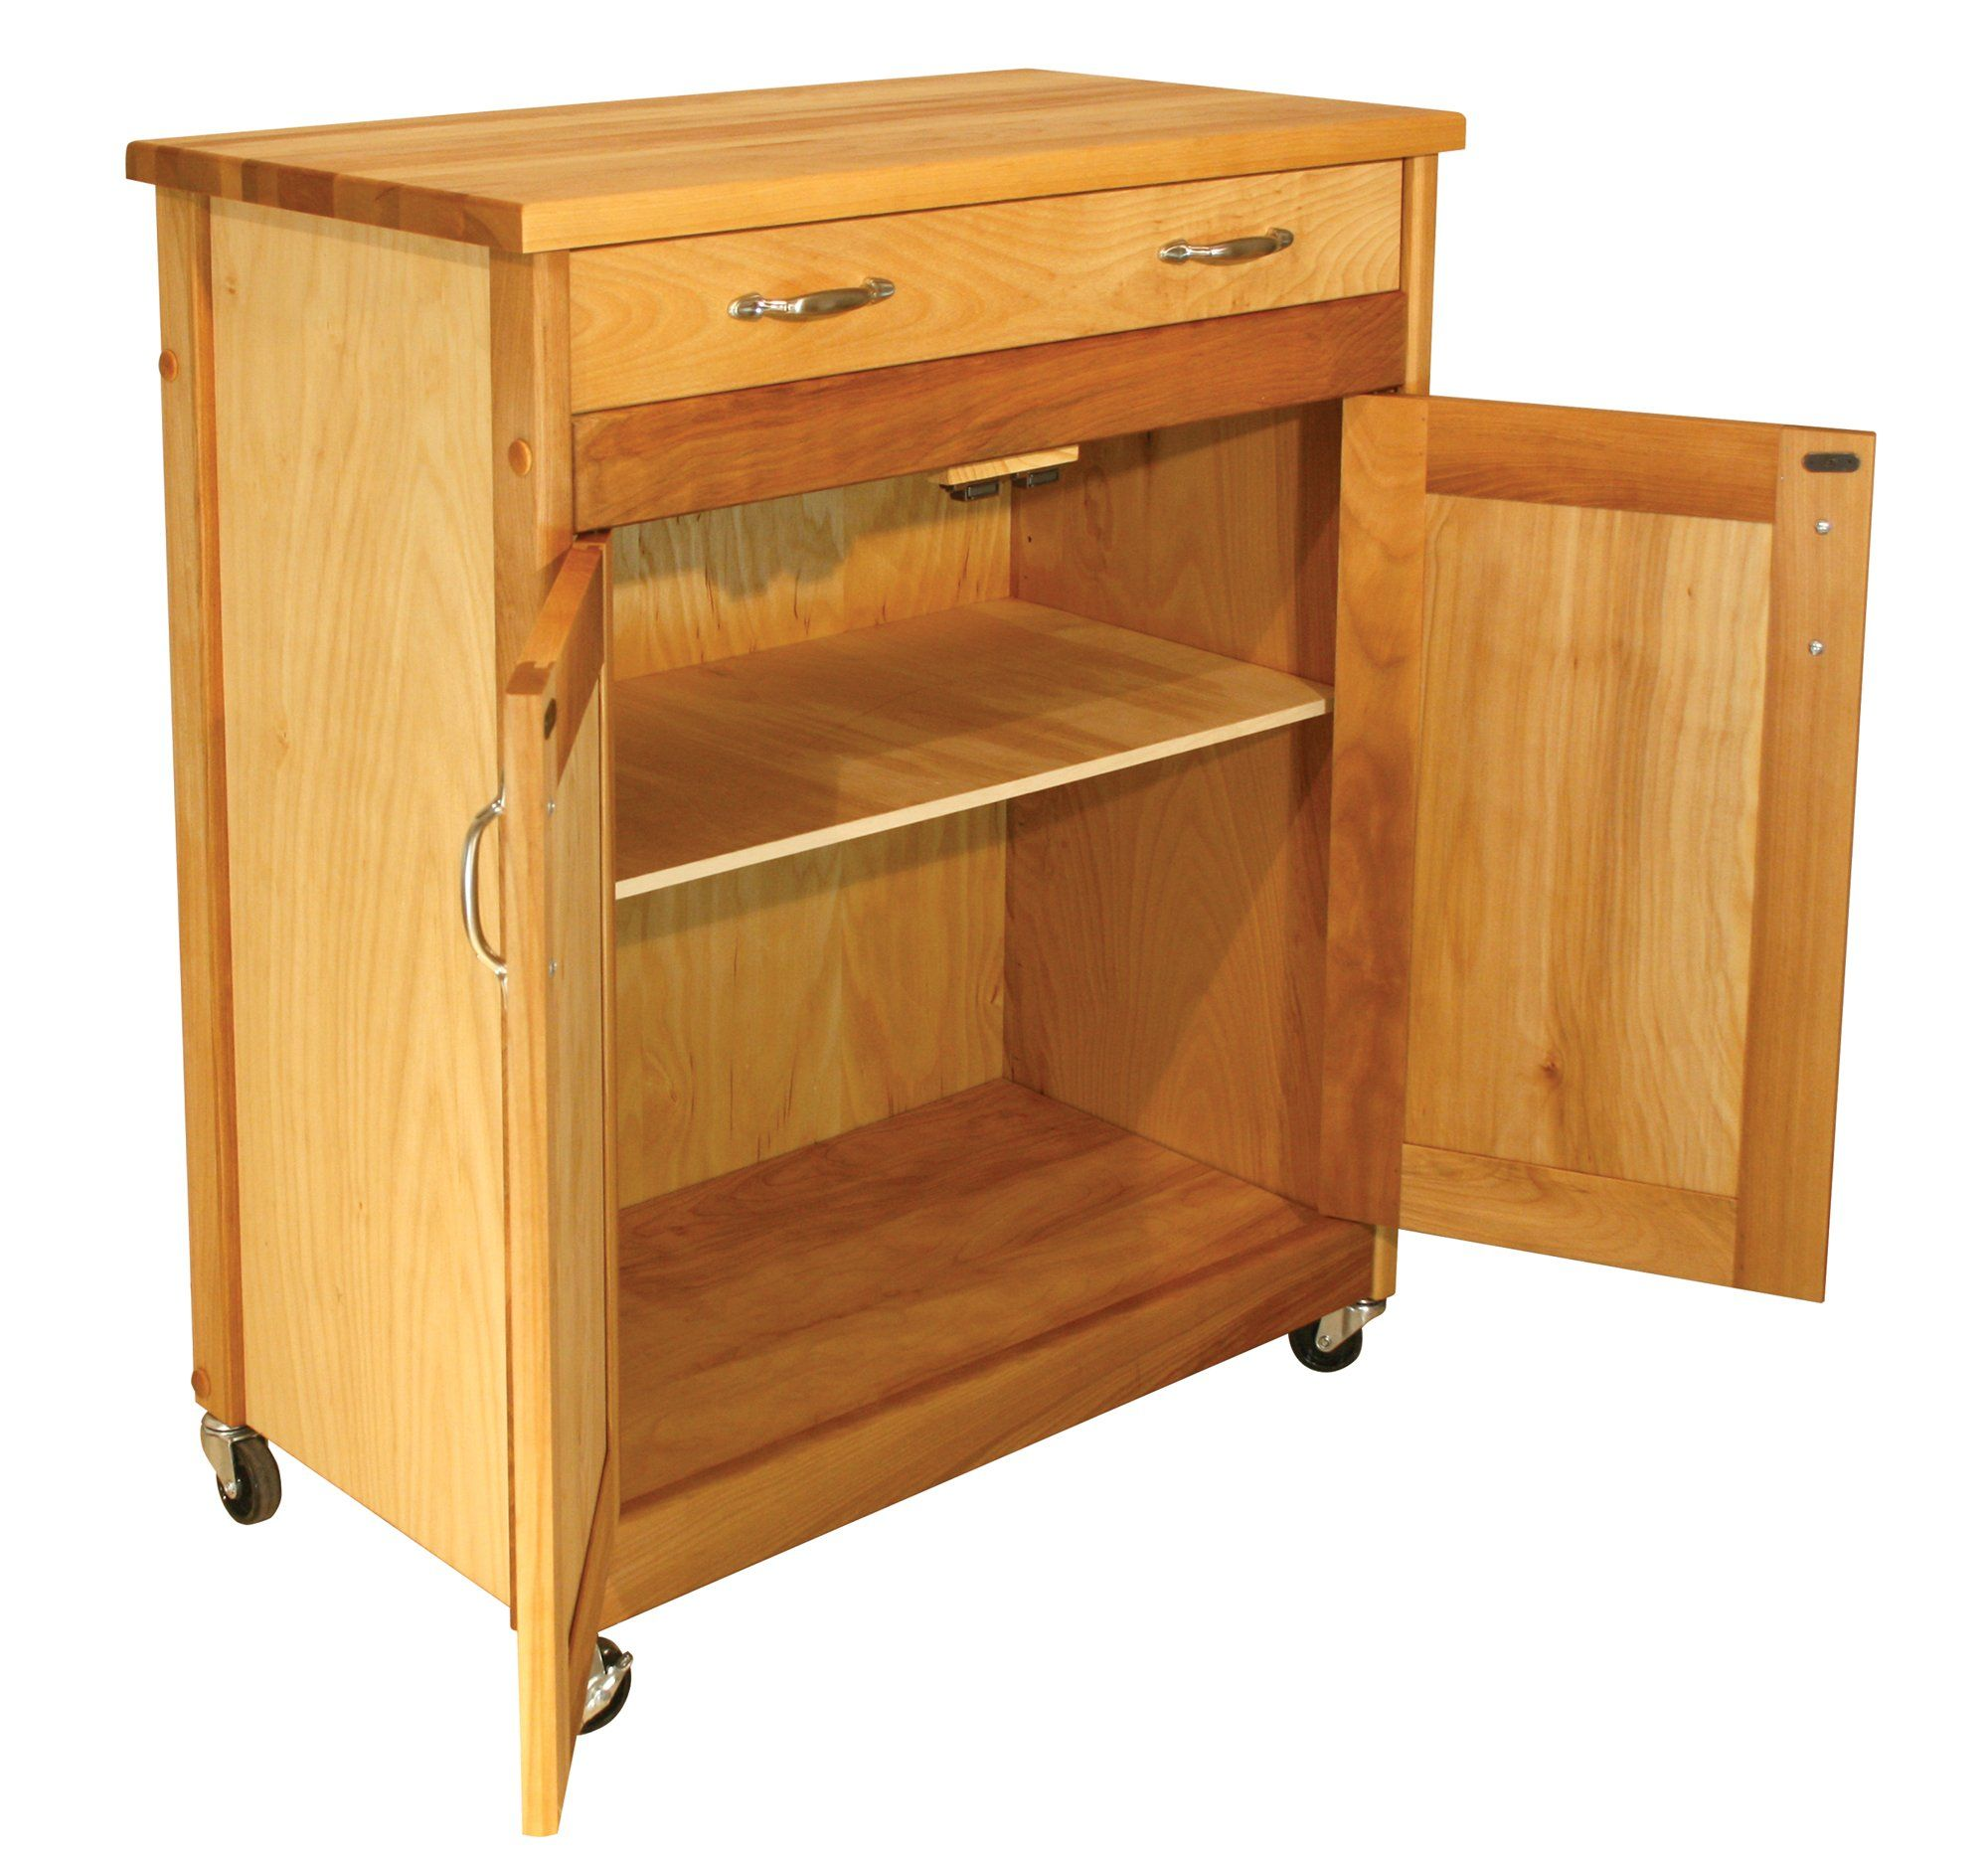 Pin On Kitchen And Dining Furniture